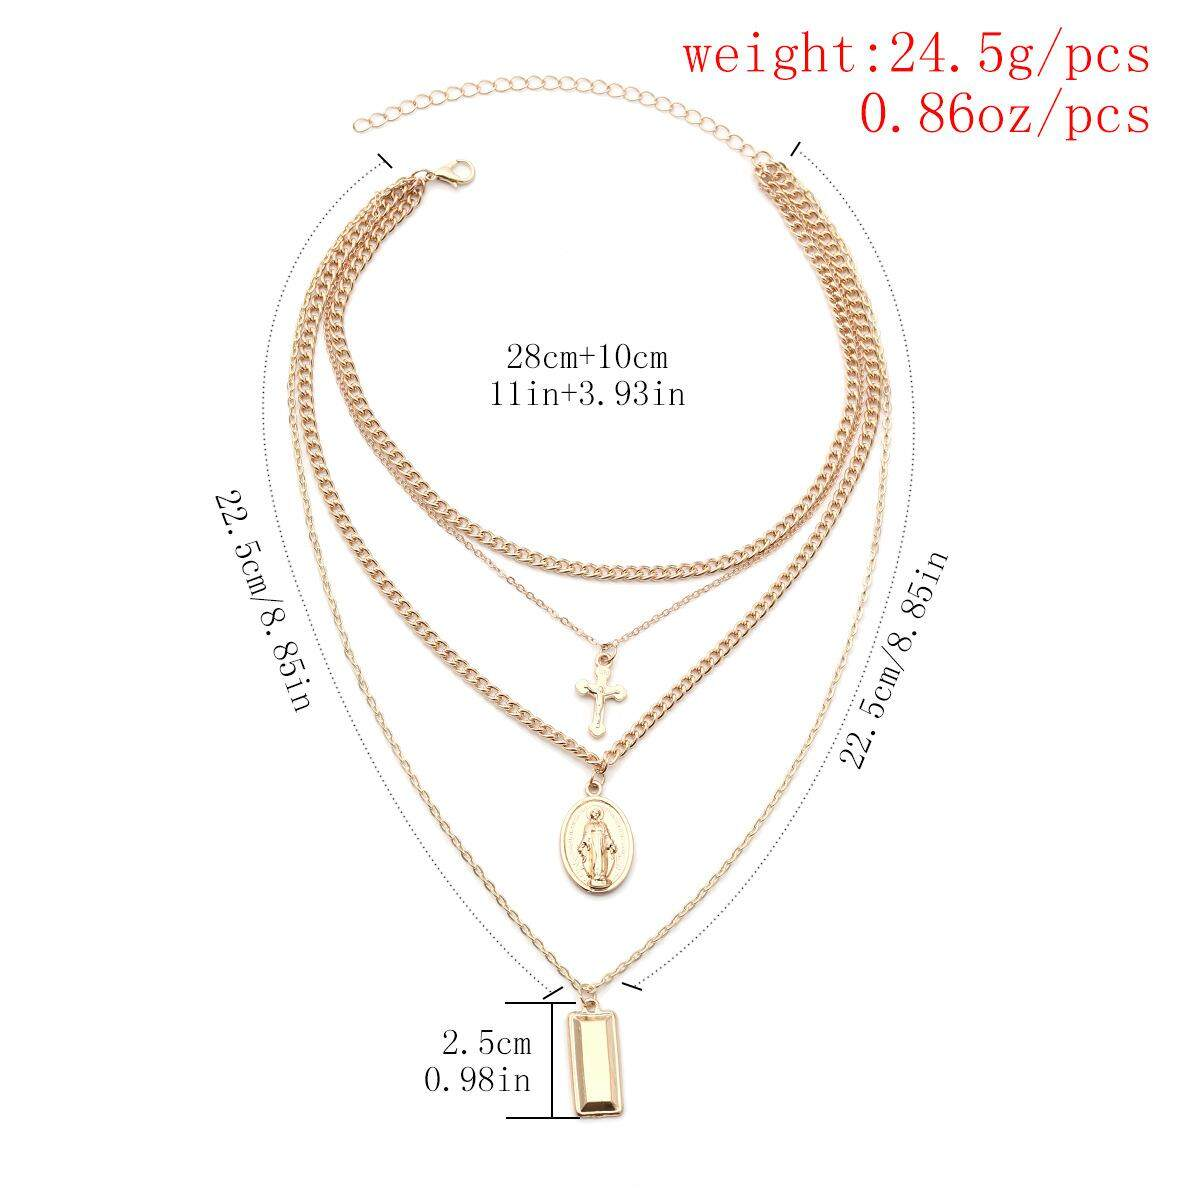 SKute Jewelry Silver Rose Gold Cross Design Tassel Necklace Multi Layer Pendant Chain Charm Summer ?